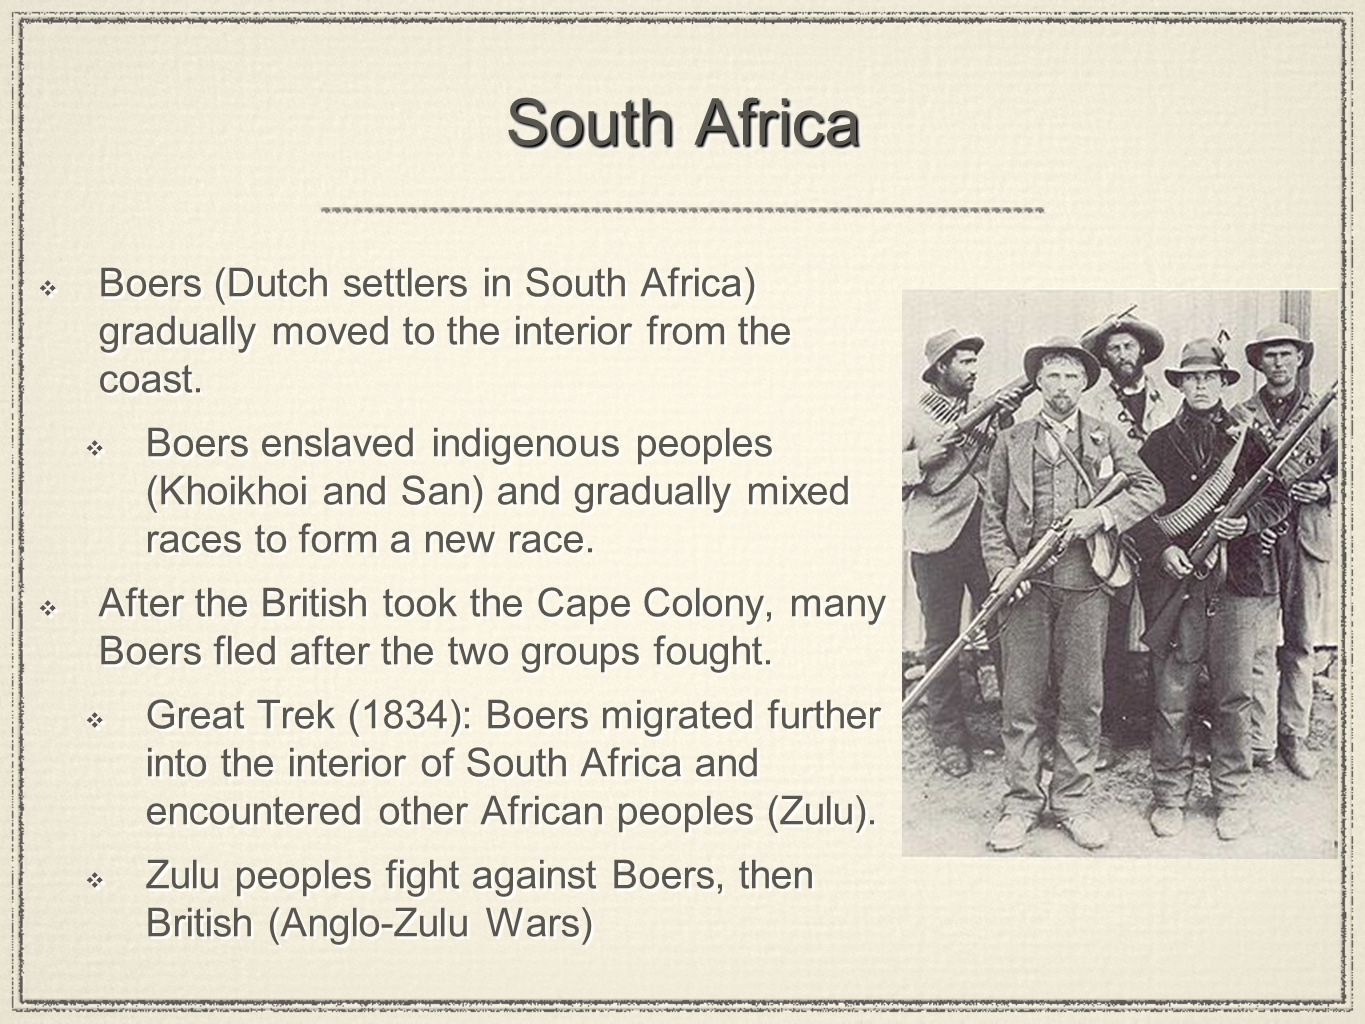 South Africa Boers (Dutch settlers in South Africa) gradually moved to the interior from the coast.